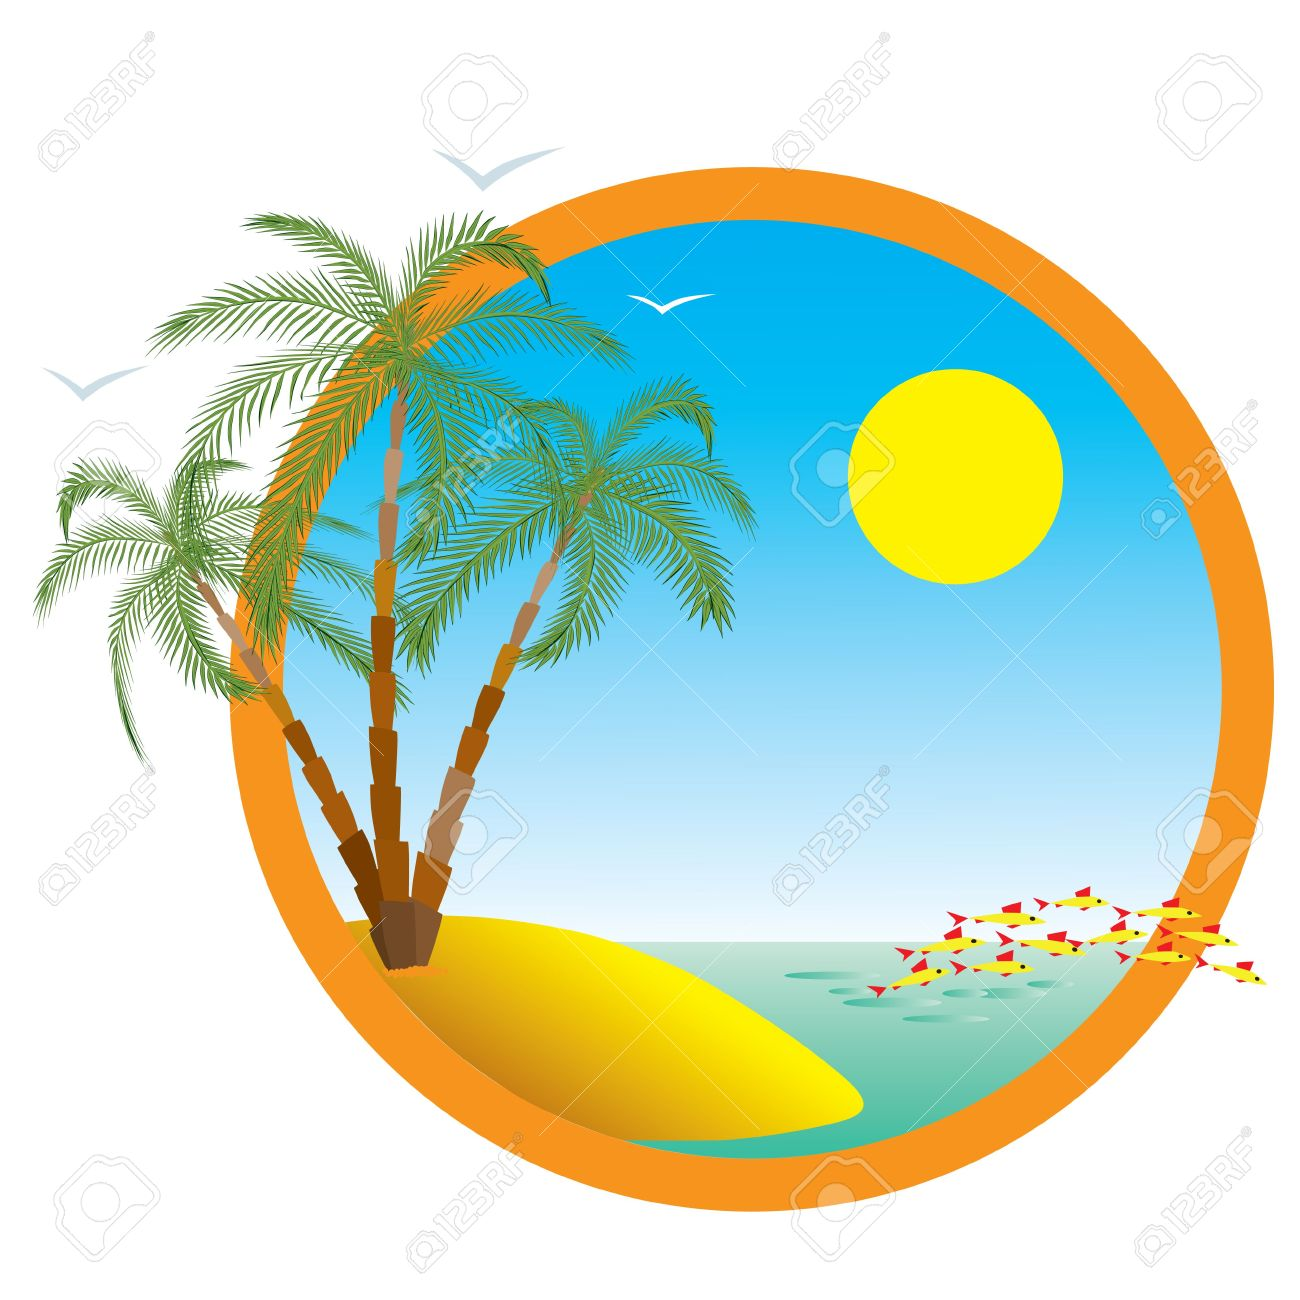 Holiday island clipart - Clipground